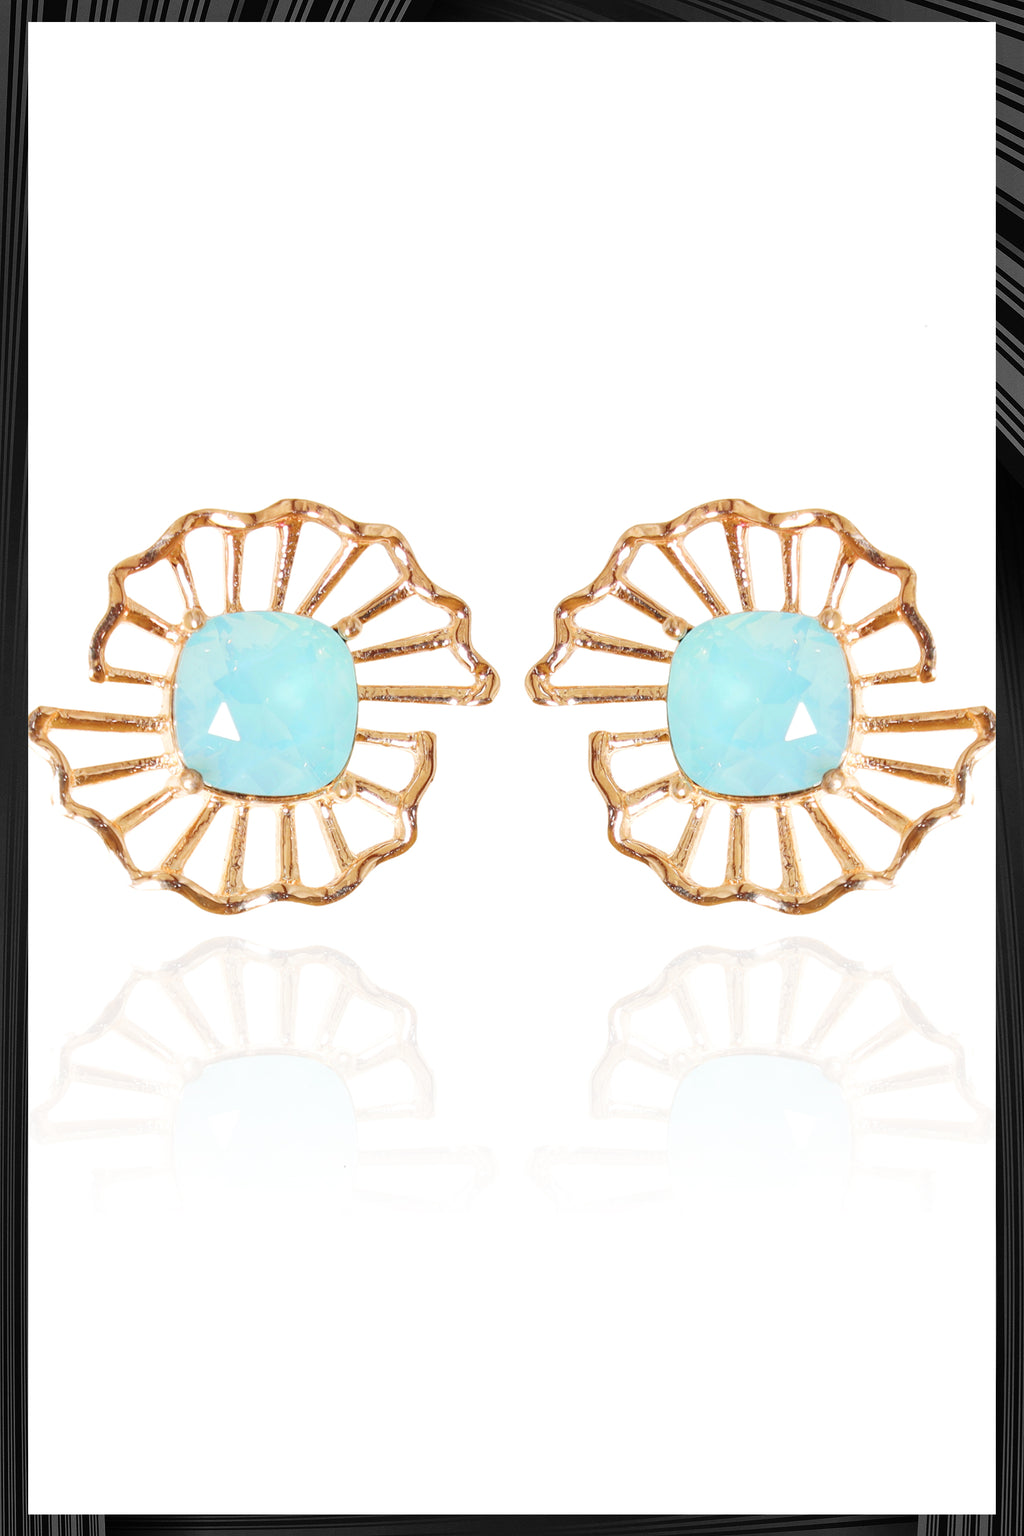 Barong Earrings | Free Delivery - Quick Shipping